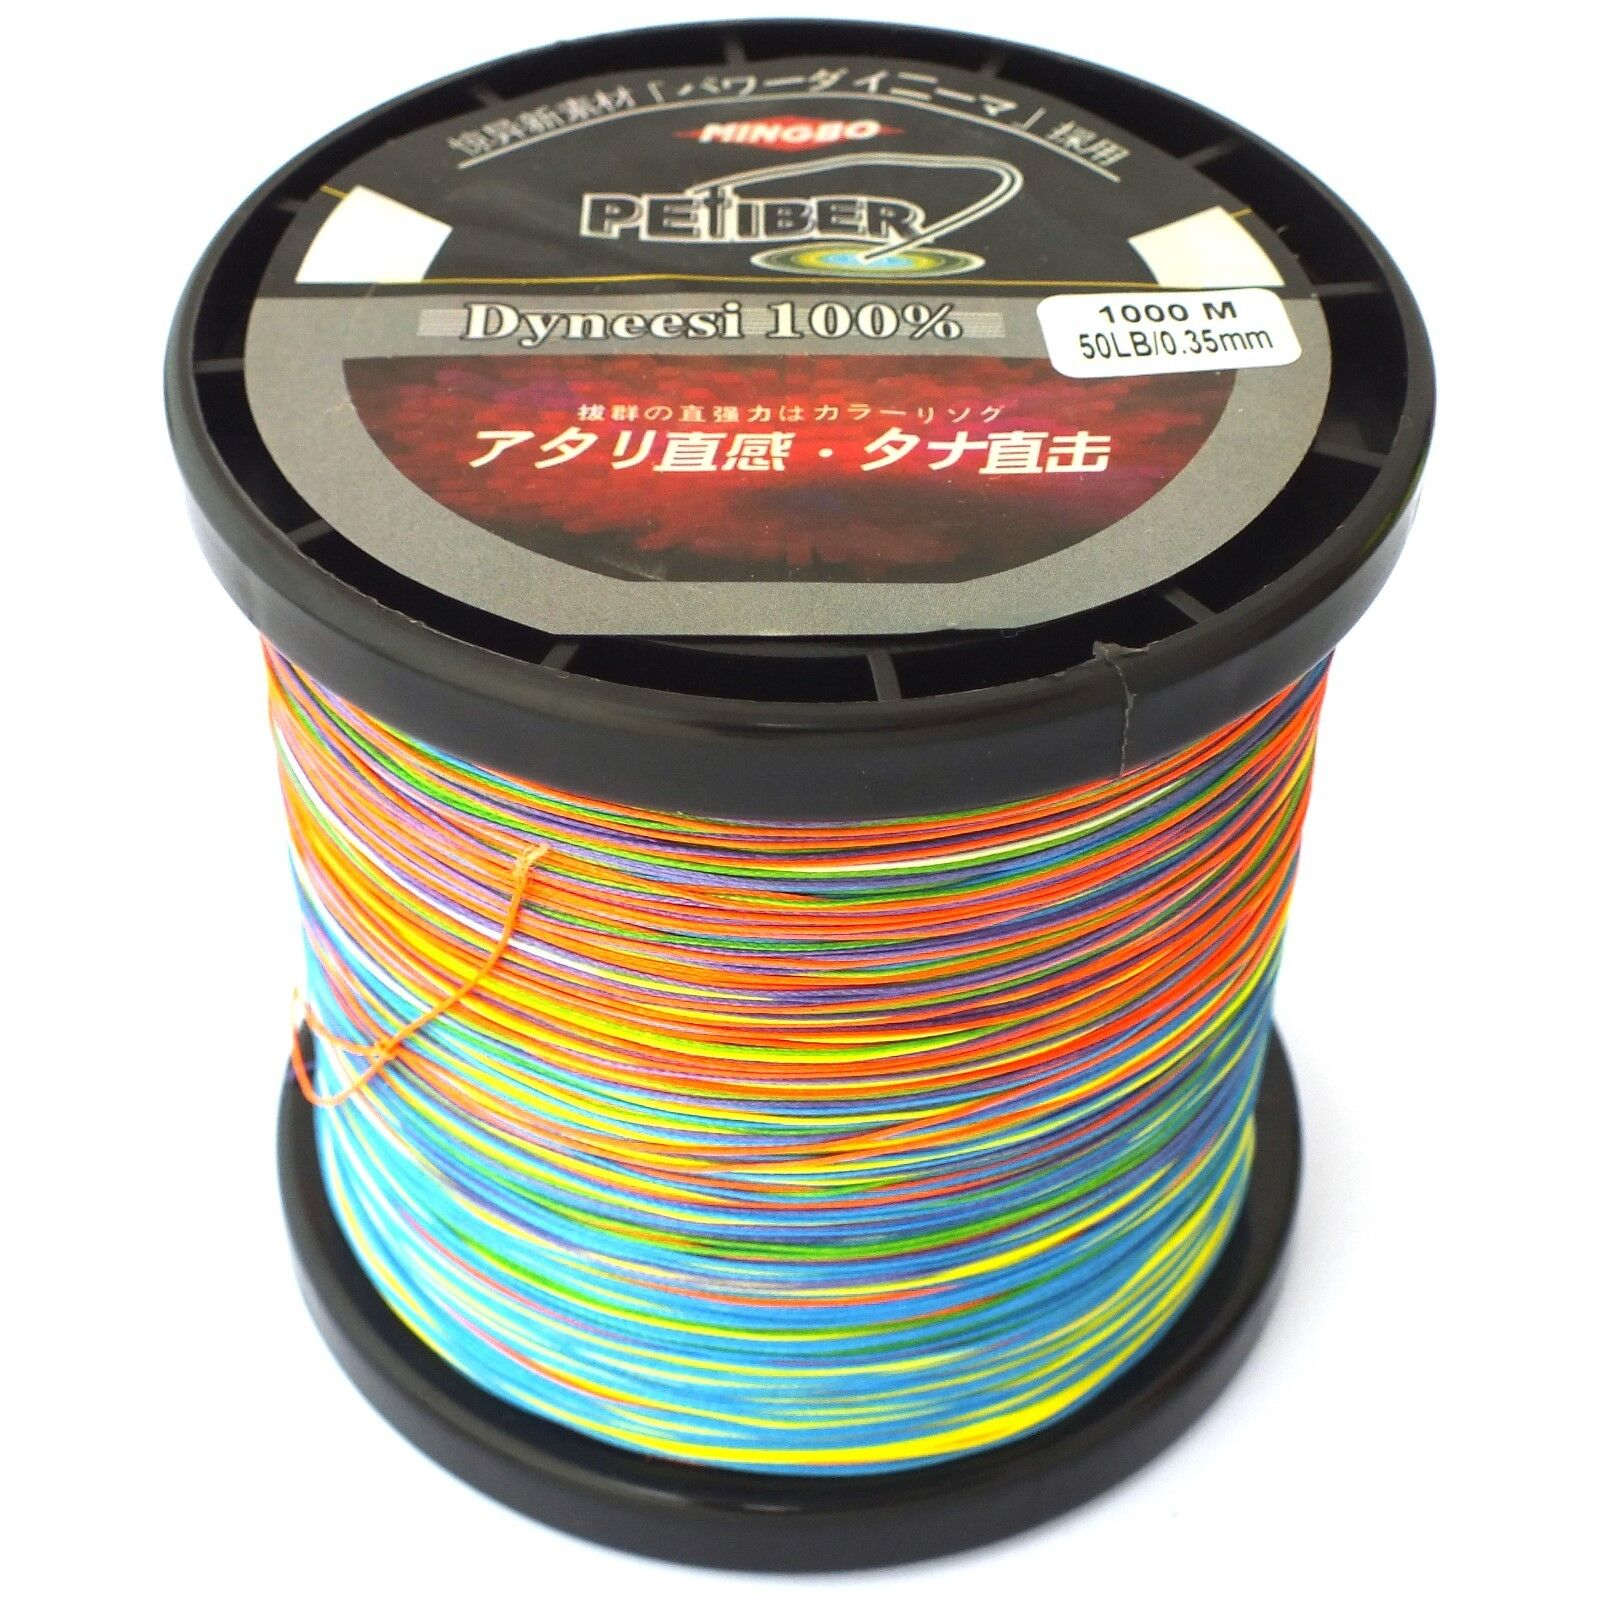 PEFIBER 8 STRe BRAID FISHING LINE 50LB 1000M 5 COLOUR JIGGING 100% UHMWPE